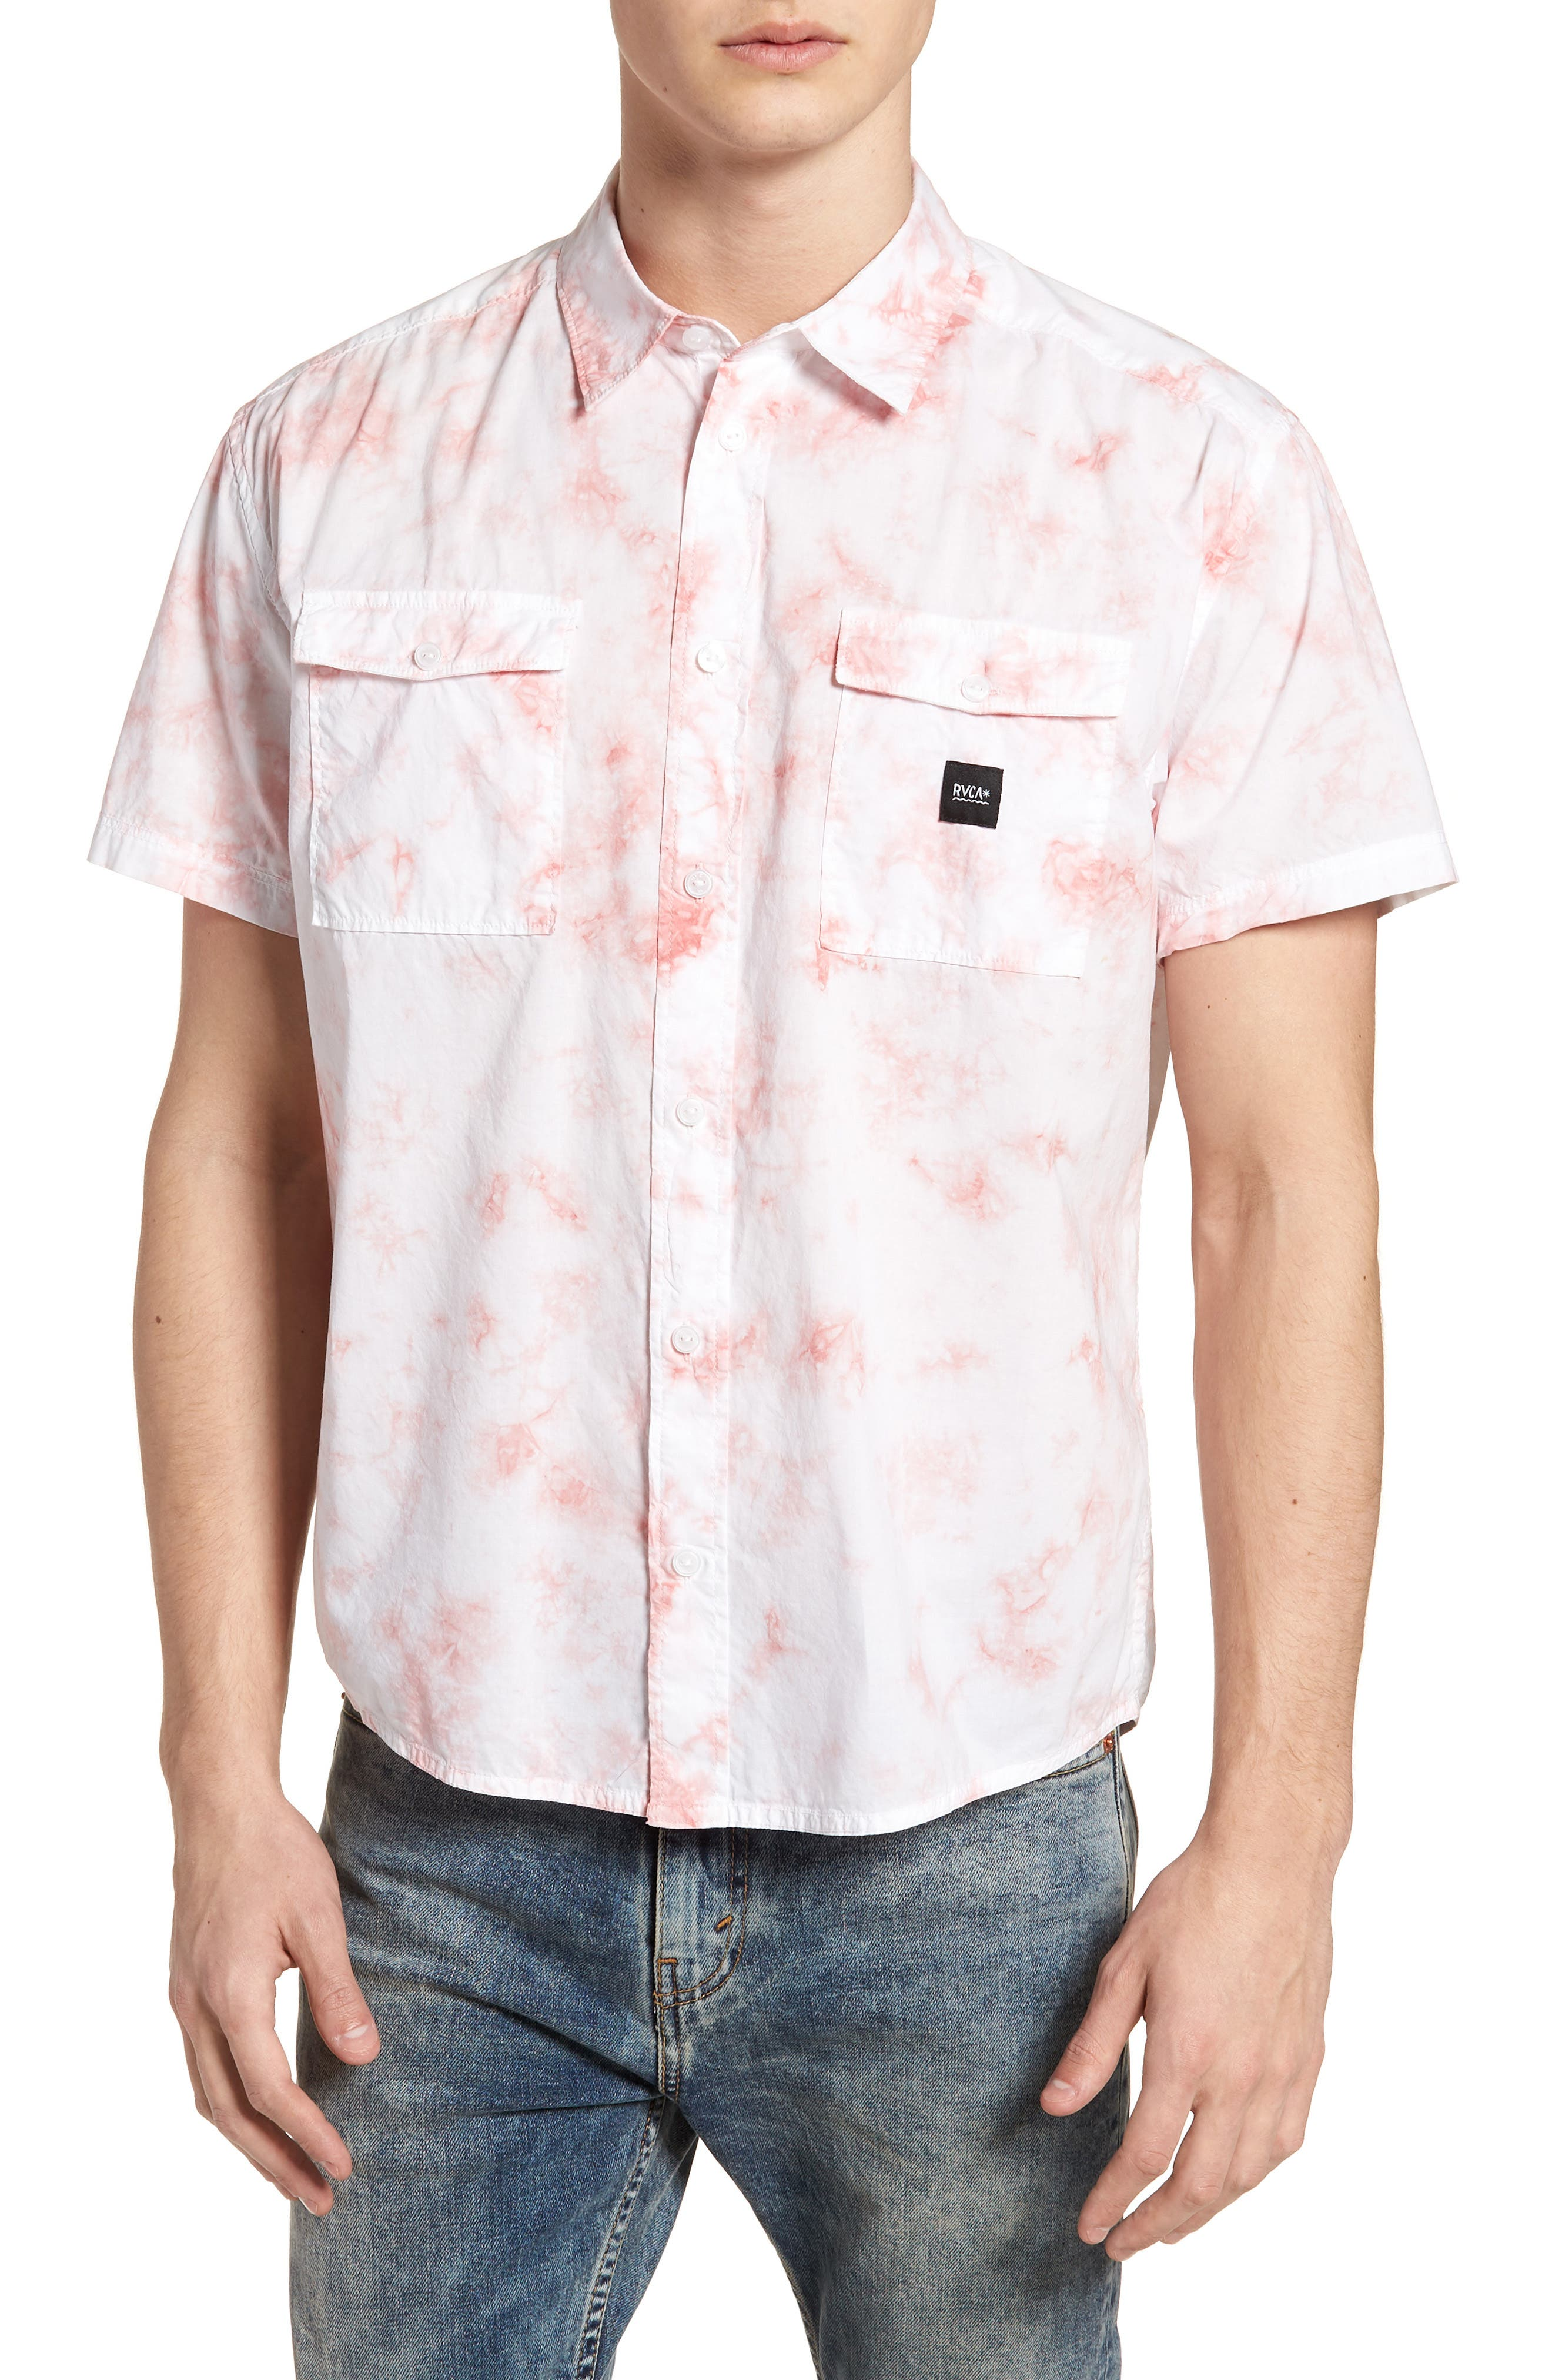 Alternate Image 1 Selected - RVCA Destroy Woven Shirt